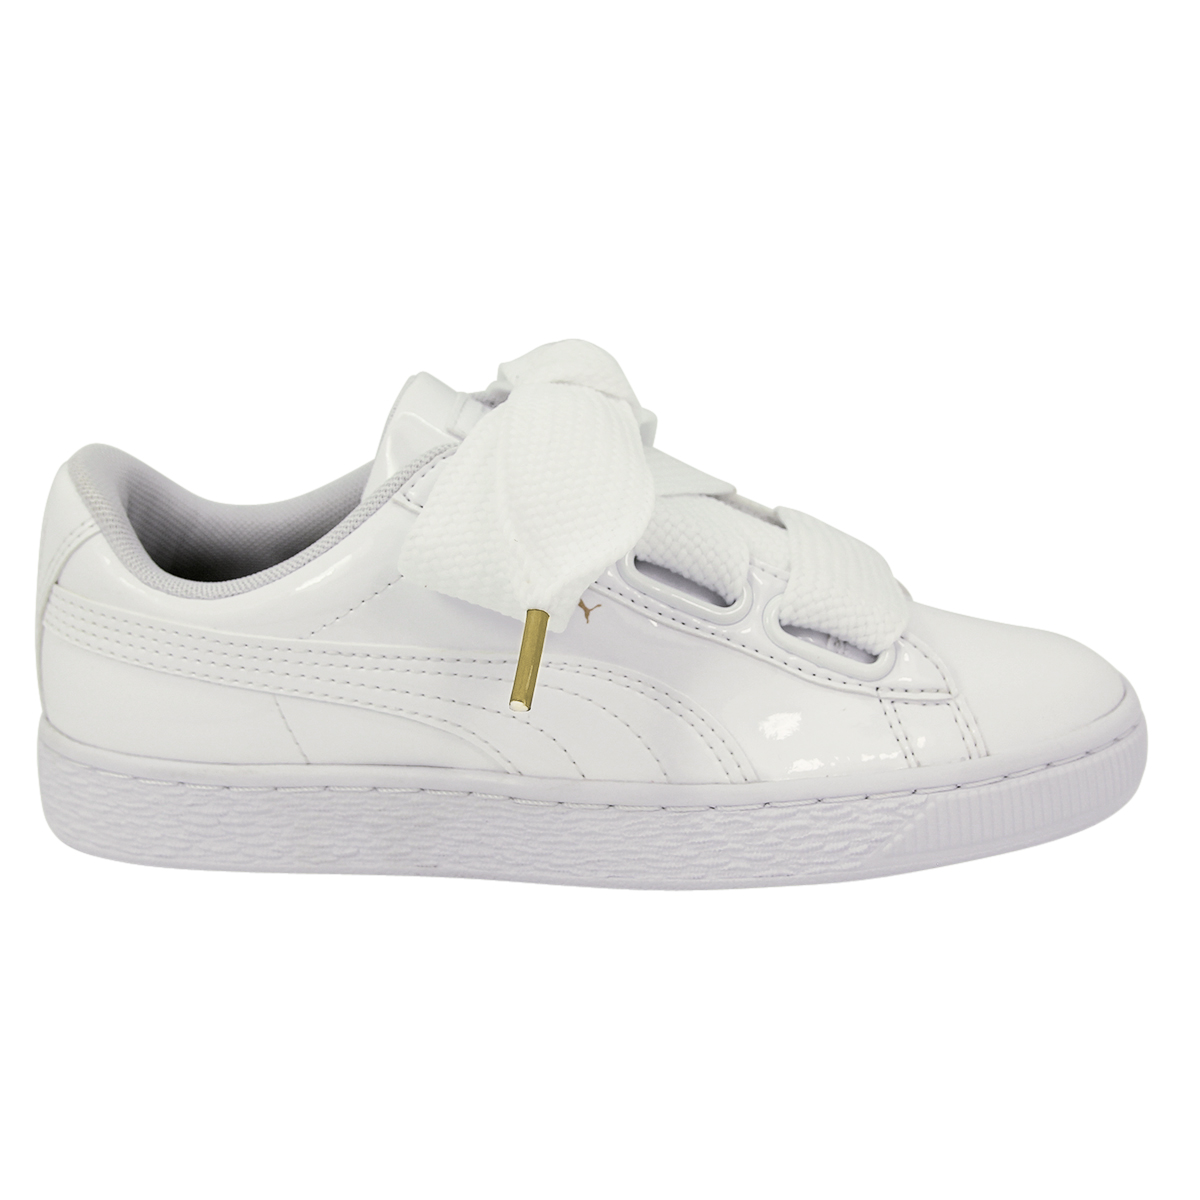 Baskets Puma Basket Heart Patent Wn's 36307302 39